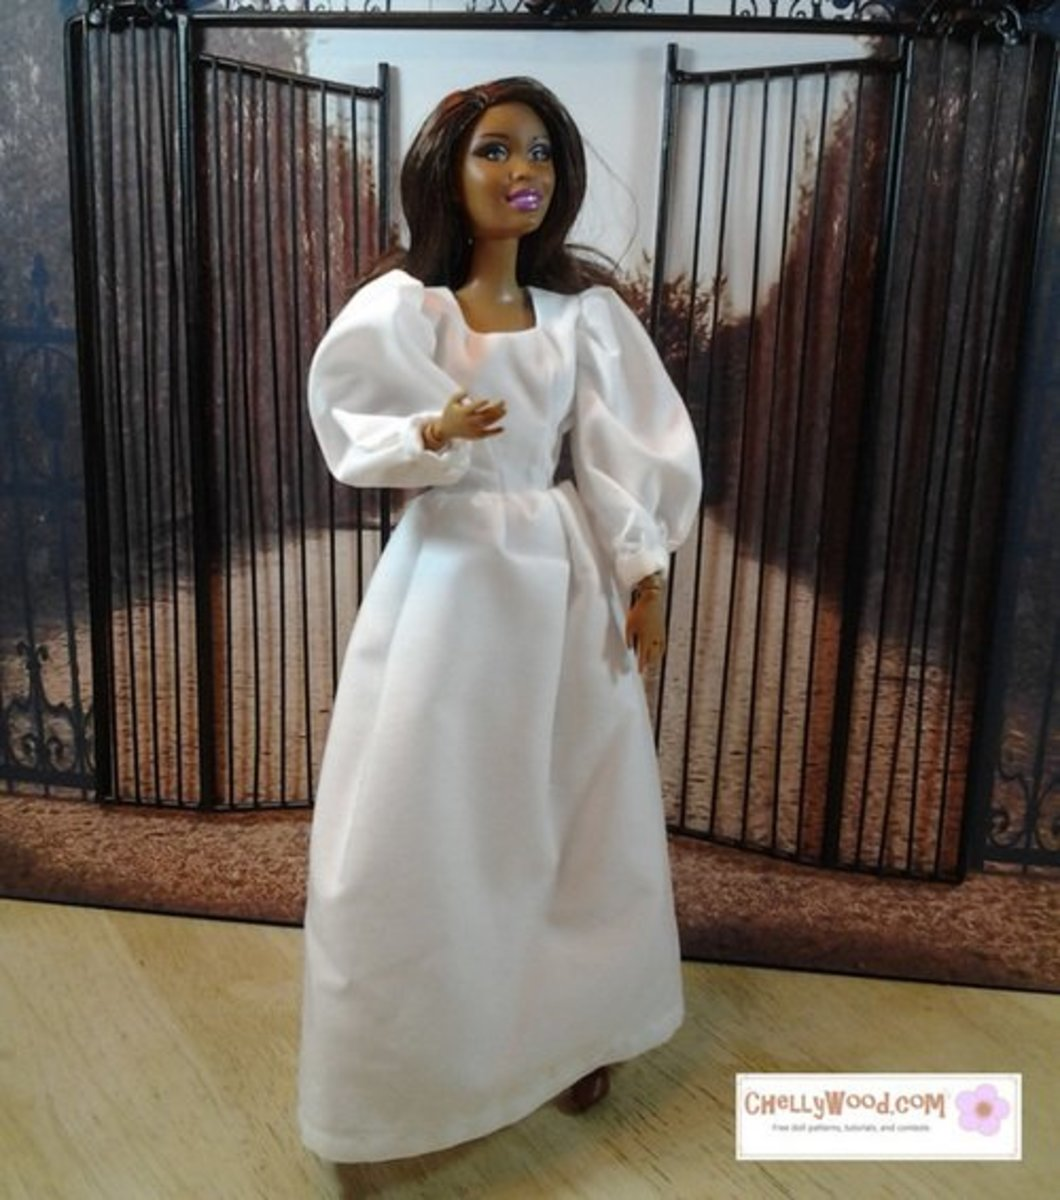 bb1b1cafe65 In this article you ll find many free doll clothes patterns. You ll find an  image of the doll clothes item and the site address where you ll find the  ...